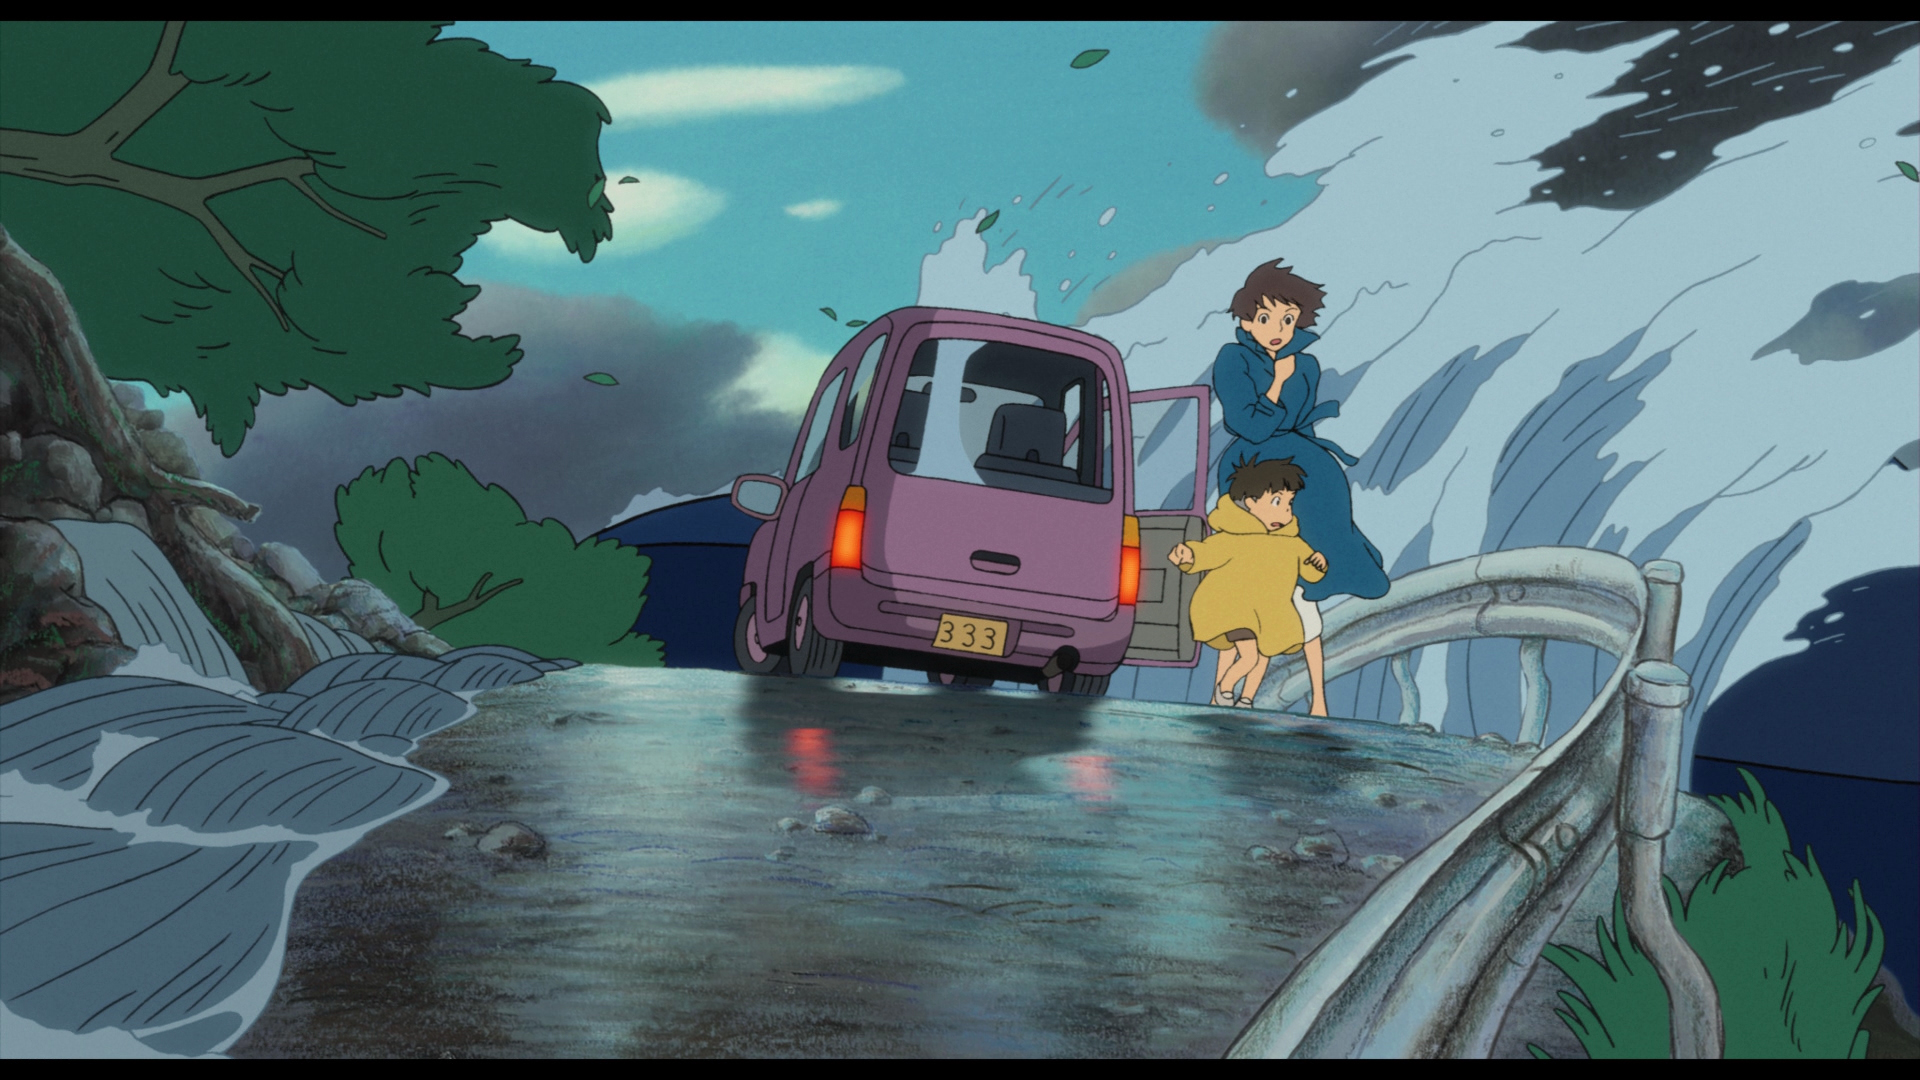 Ghibli Wallpaper Iphone Ponyo Wallpapers High Quality Download Free